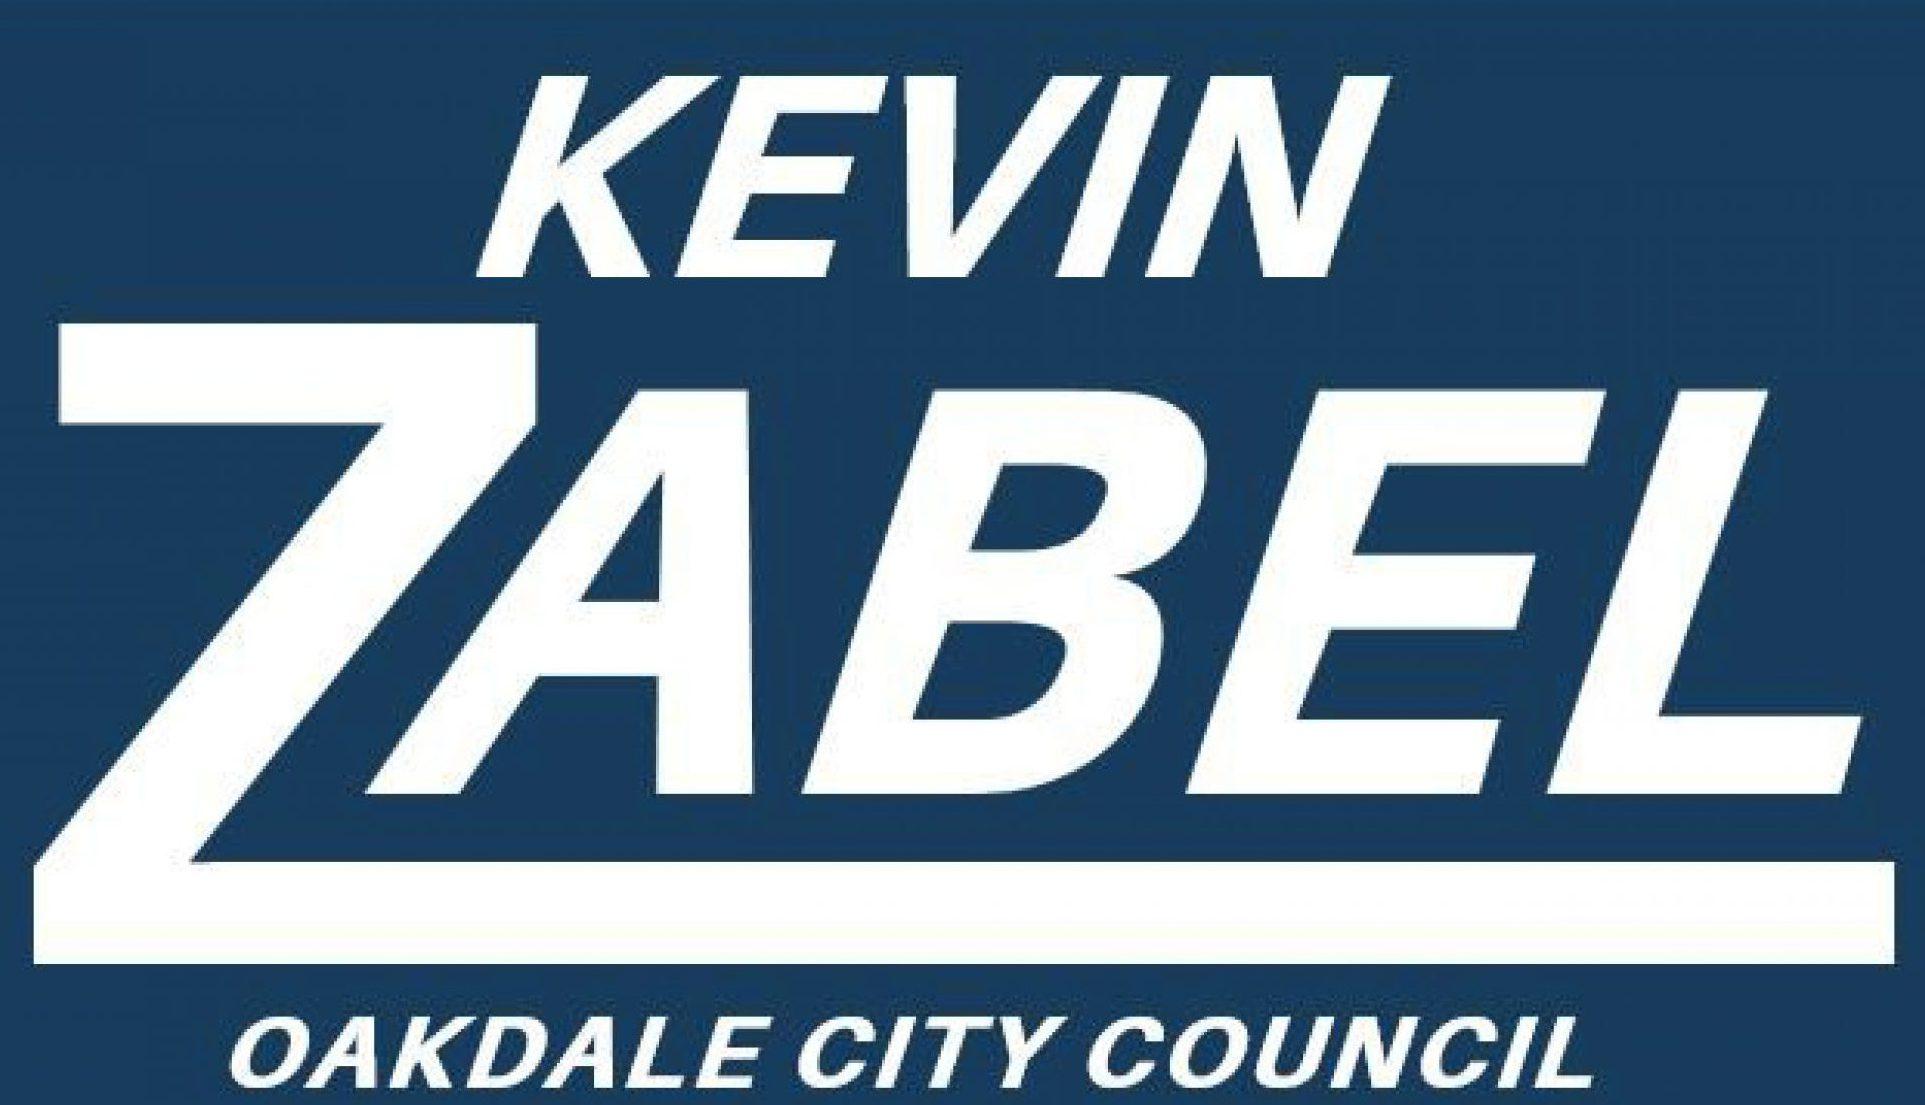 Kevin Zabel for Oakdale City Council